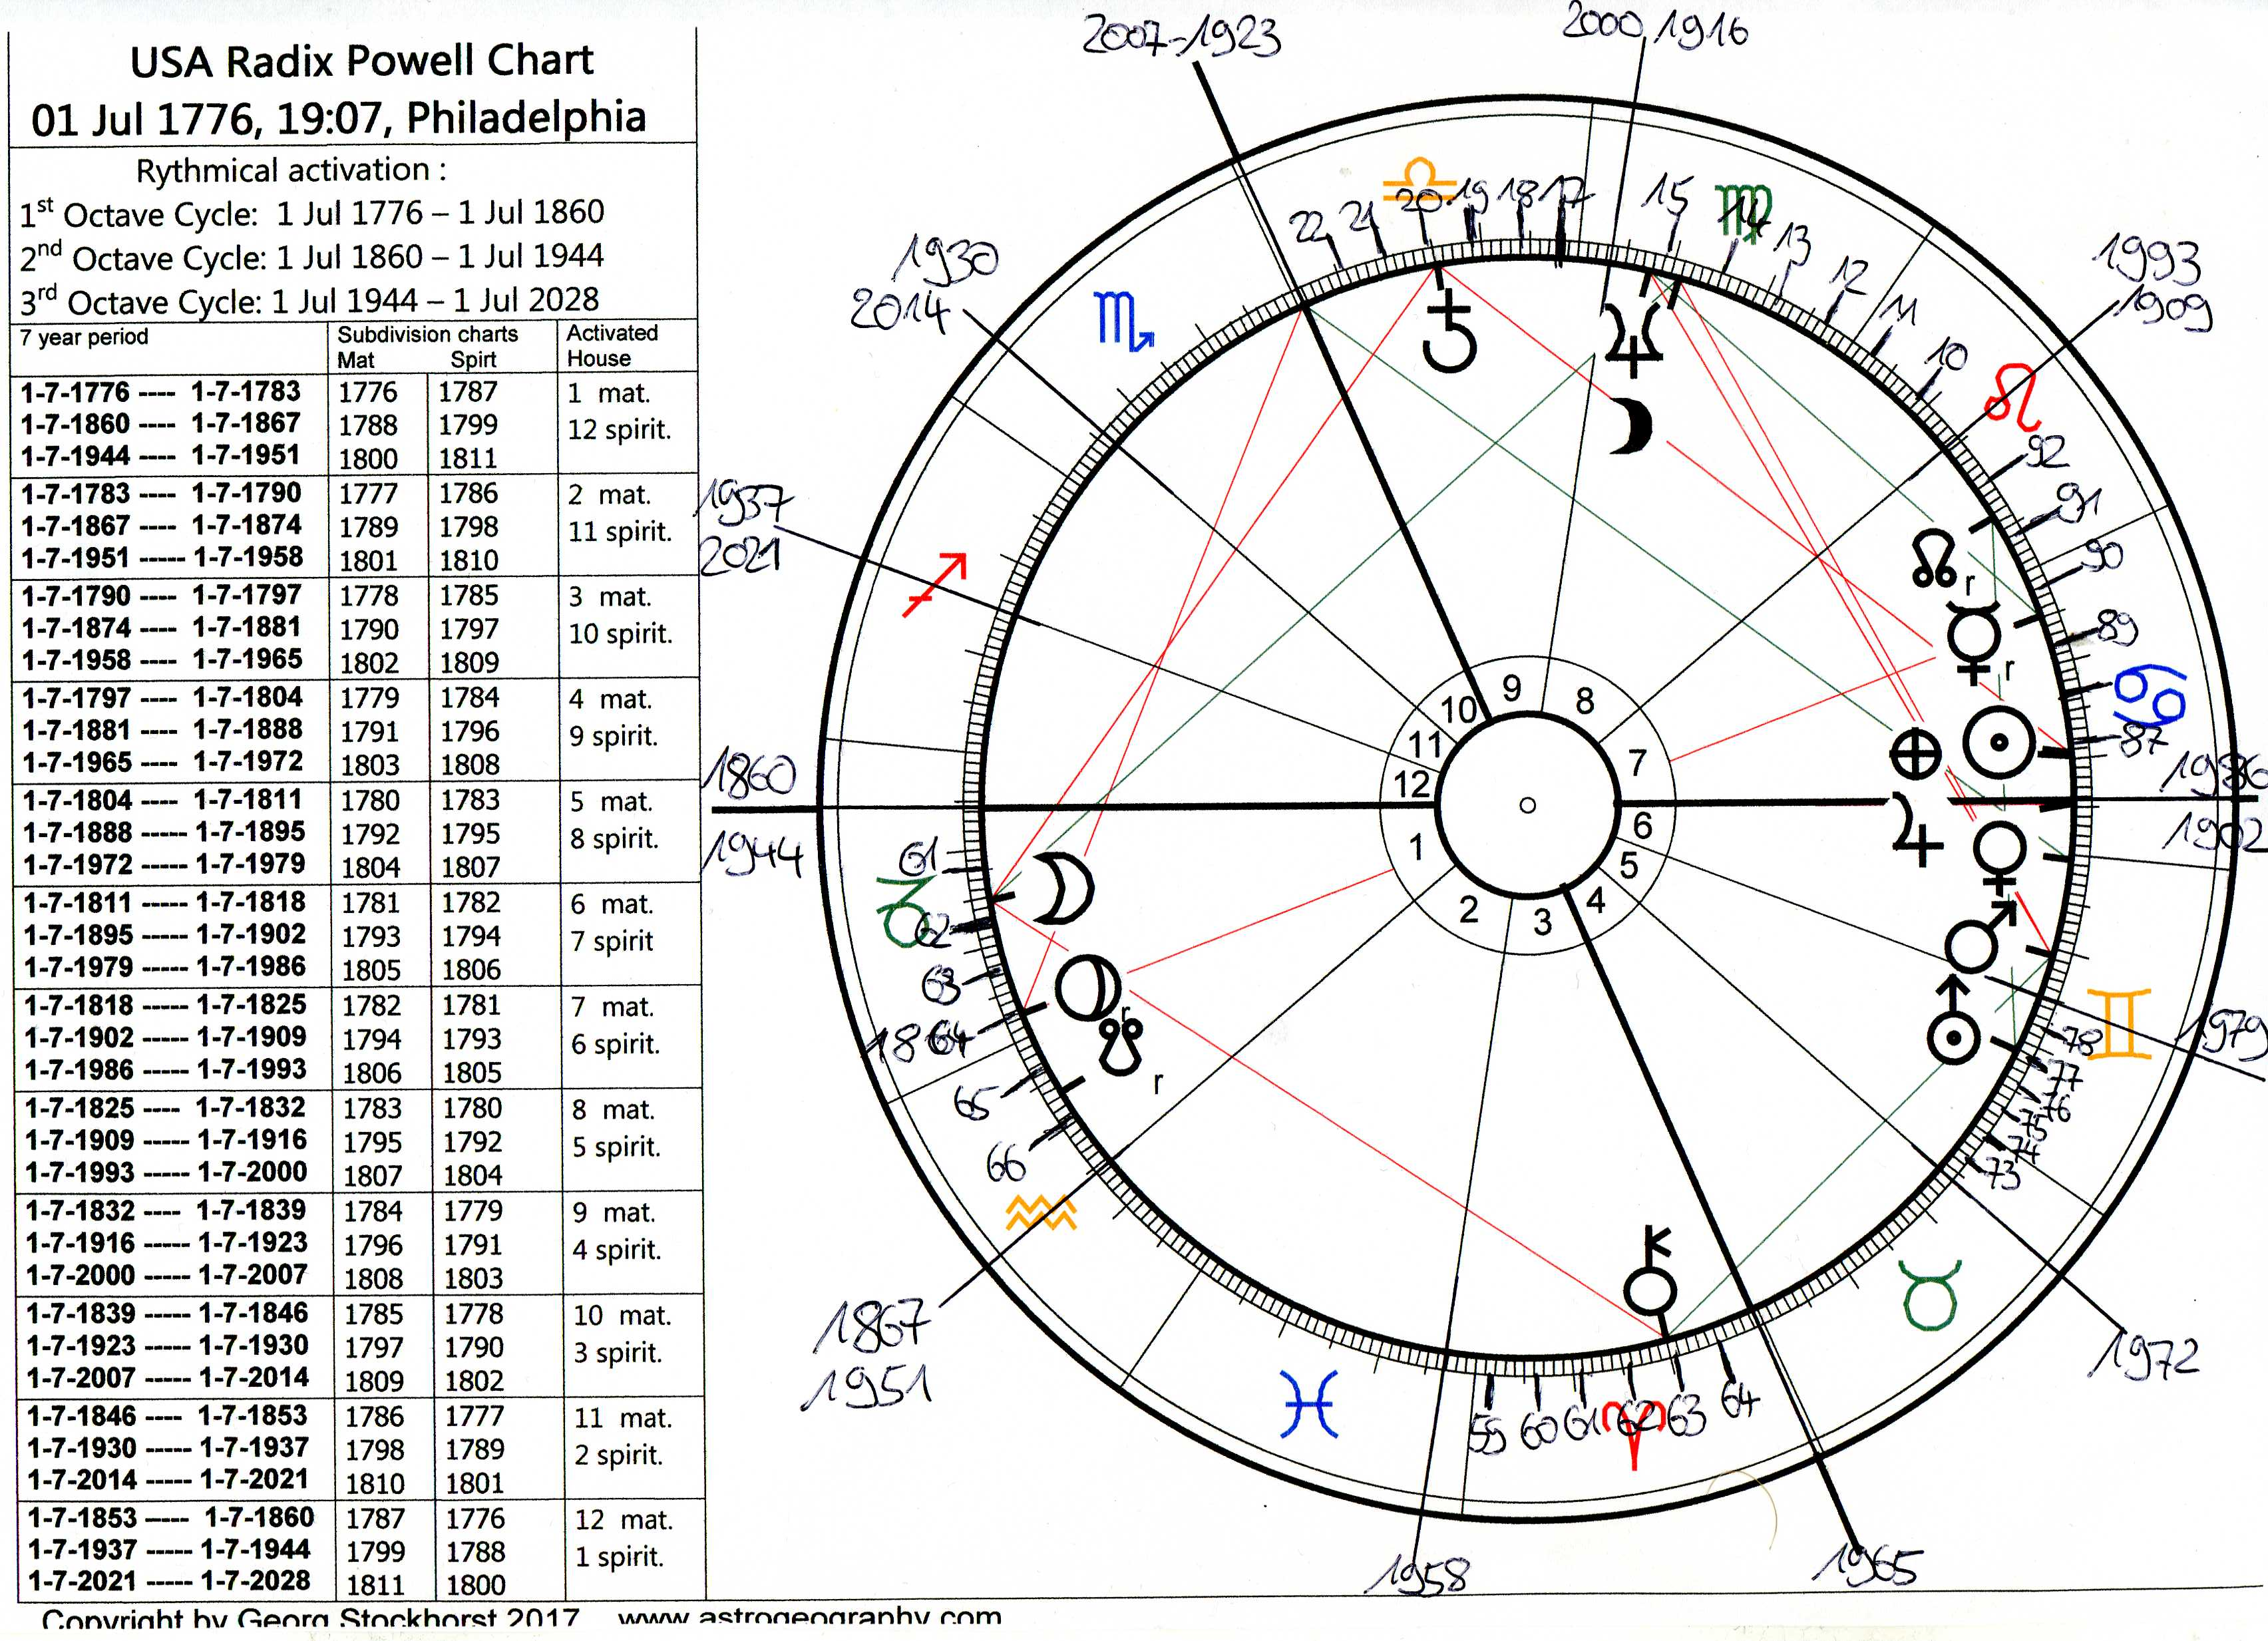 Rythmical Activations In The Powell Chart For The Foundation Of The